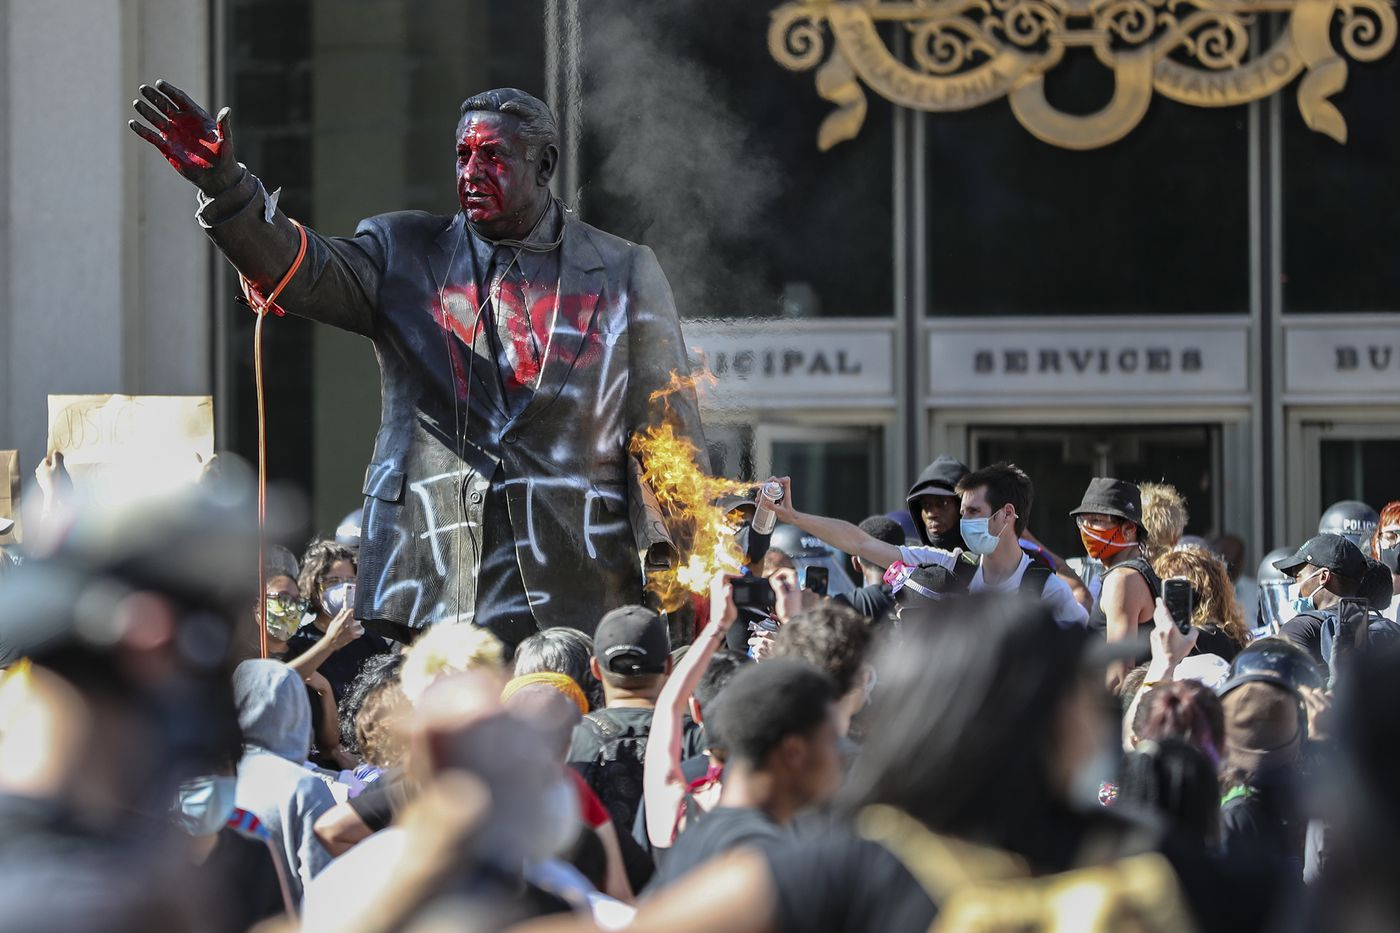 The statue of former mayor and police commissioner Frank Rizzo — for many a painful reminder of the city's history of policy brutality — was targeted, with demonstrators trying to topple it and set it on fire.